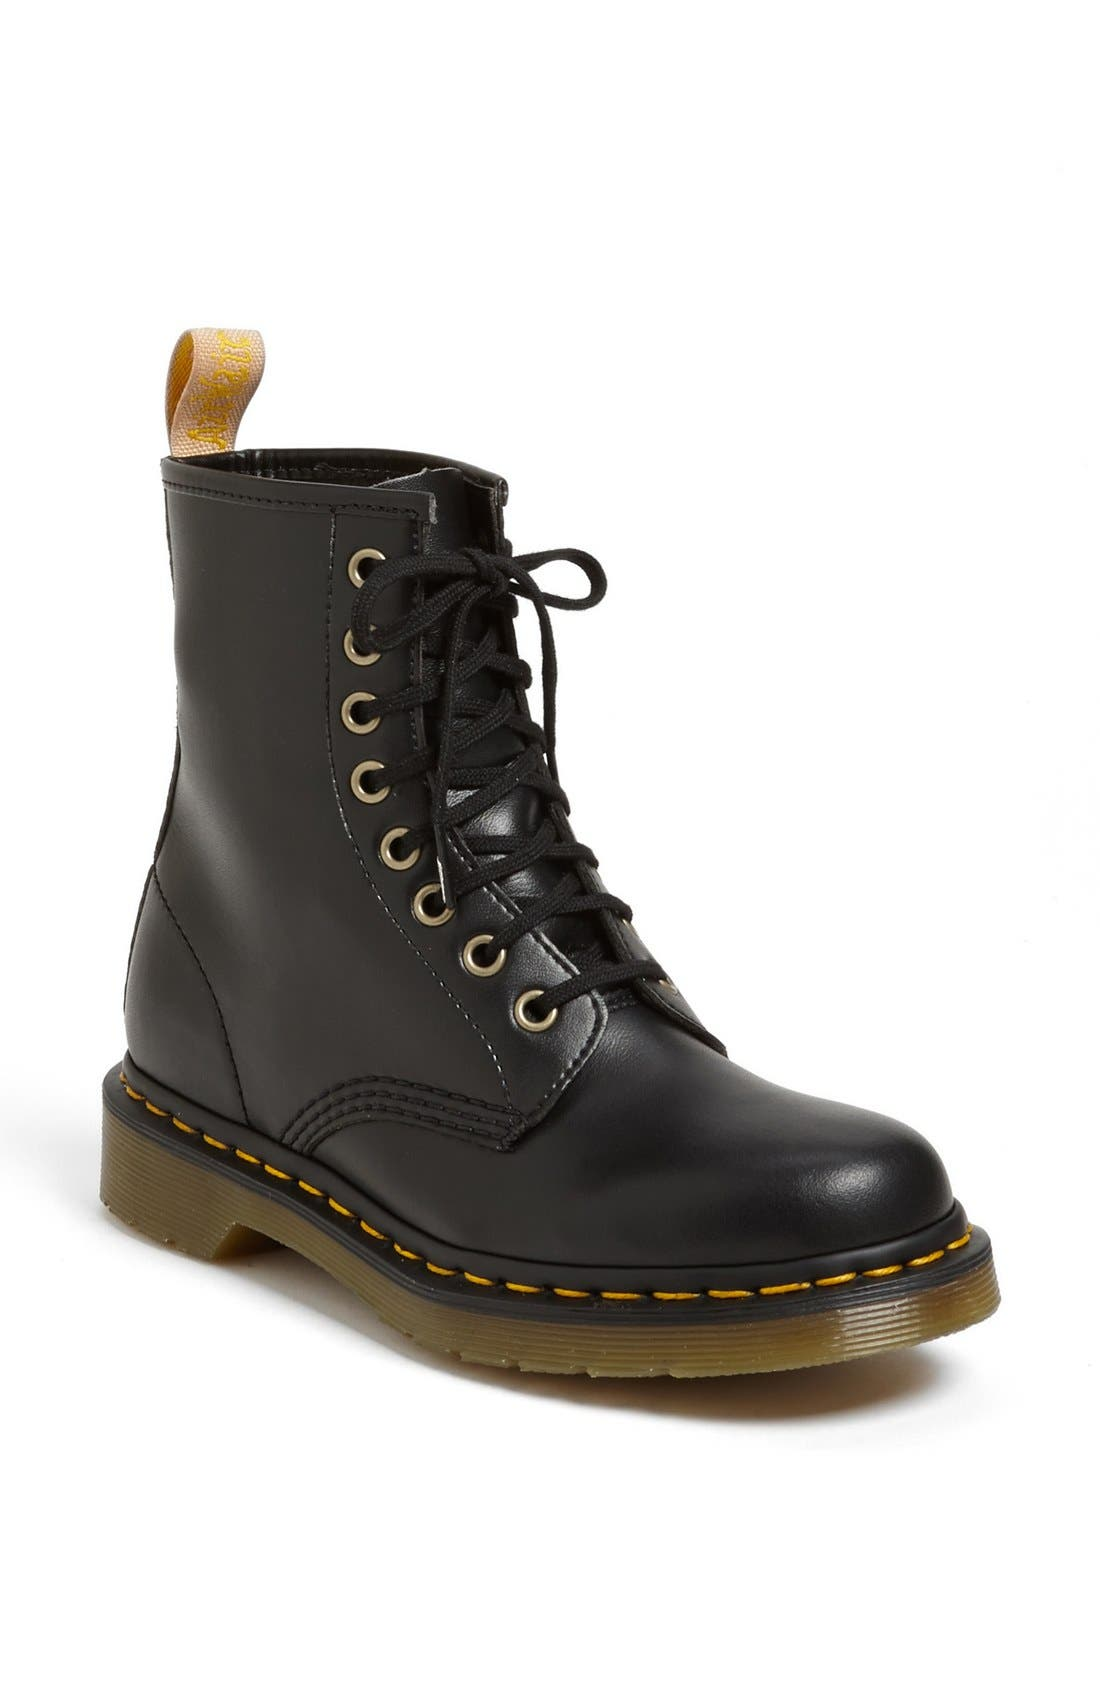 Main Image - Dr. Martens 'Vegan 1460' Boot